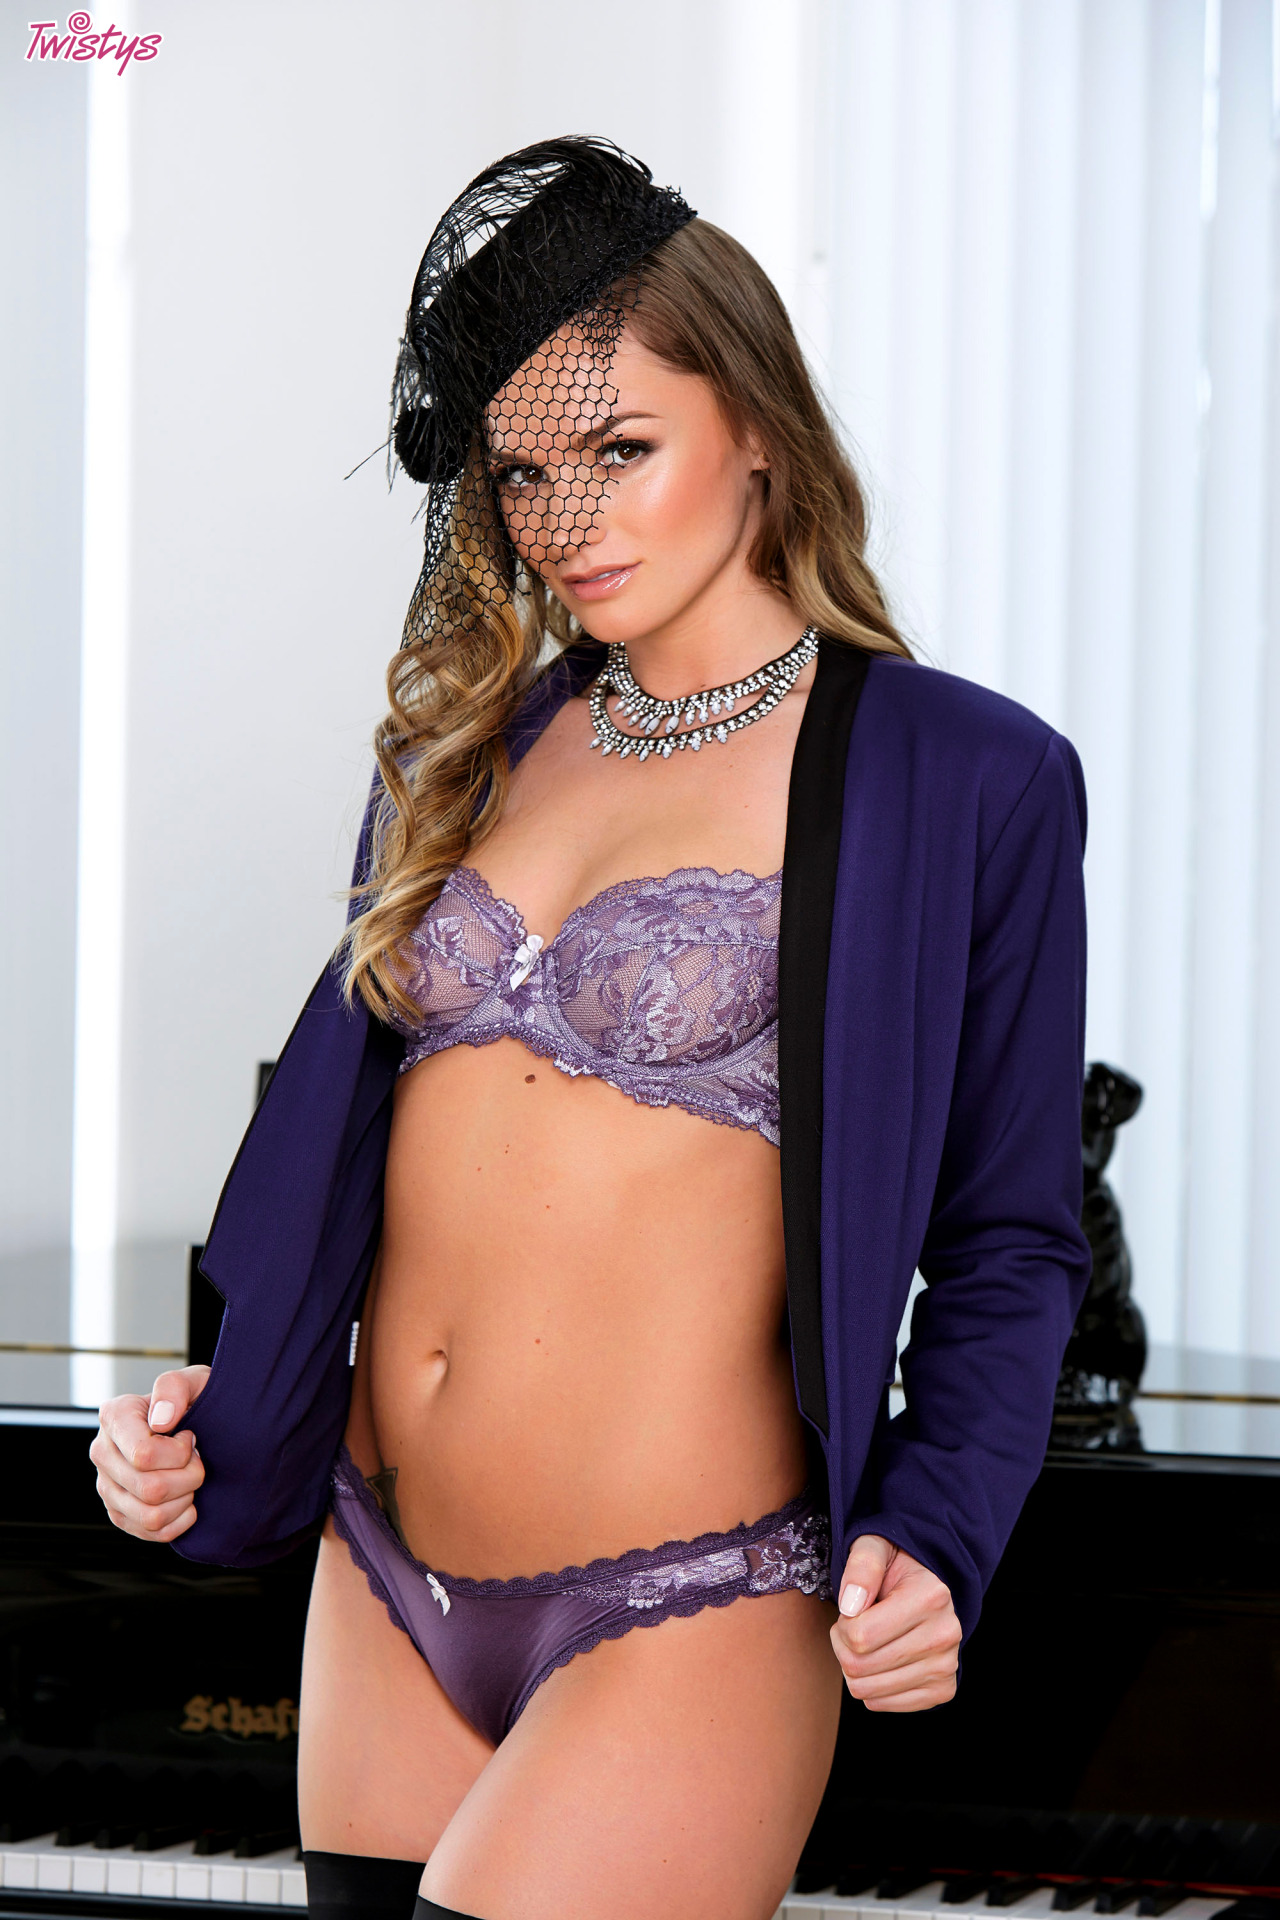 Tori Black Shot For Twistys 1